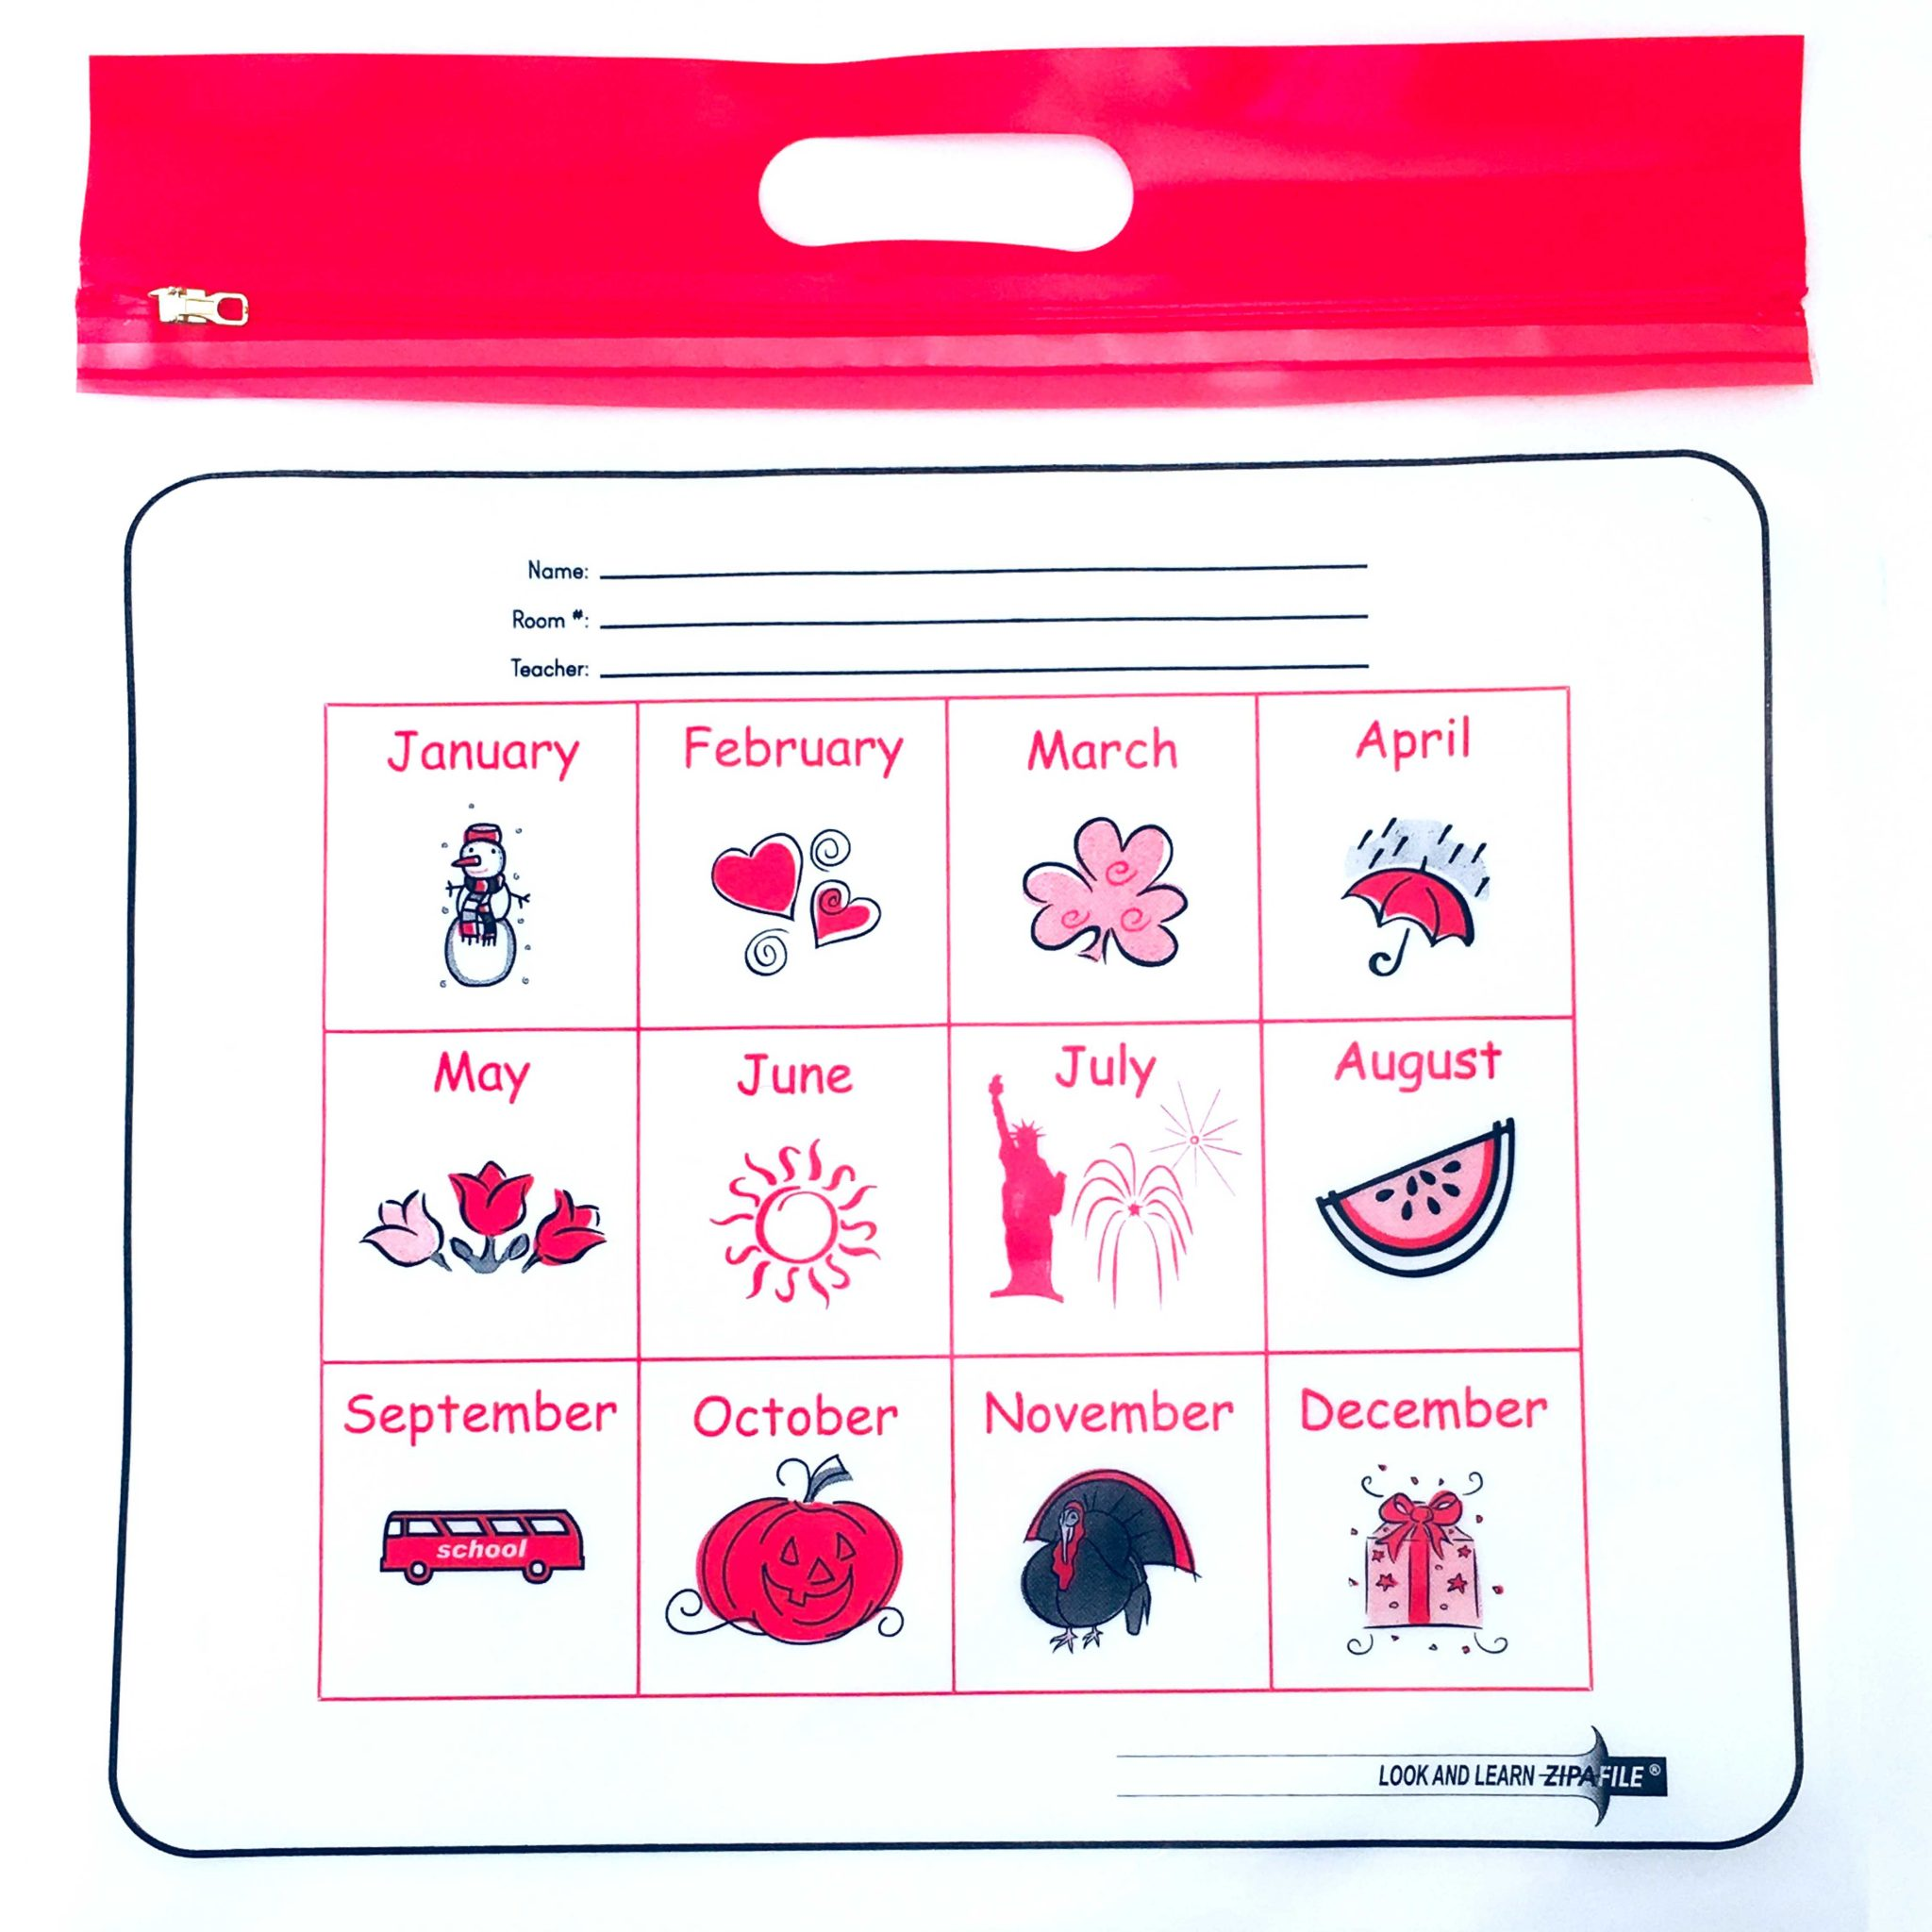 Red Handle Months ZIPAFILE Look and Learn Bag – Pack of 25